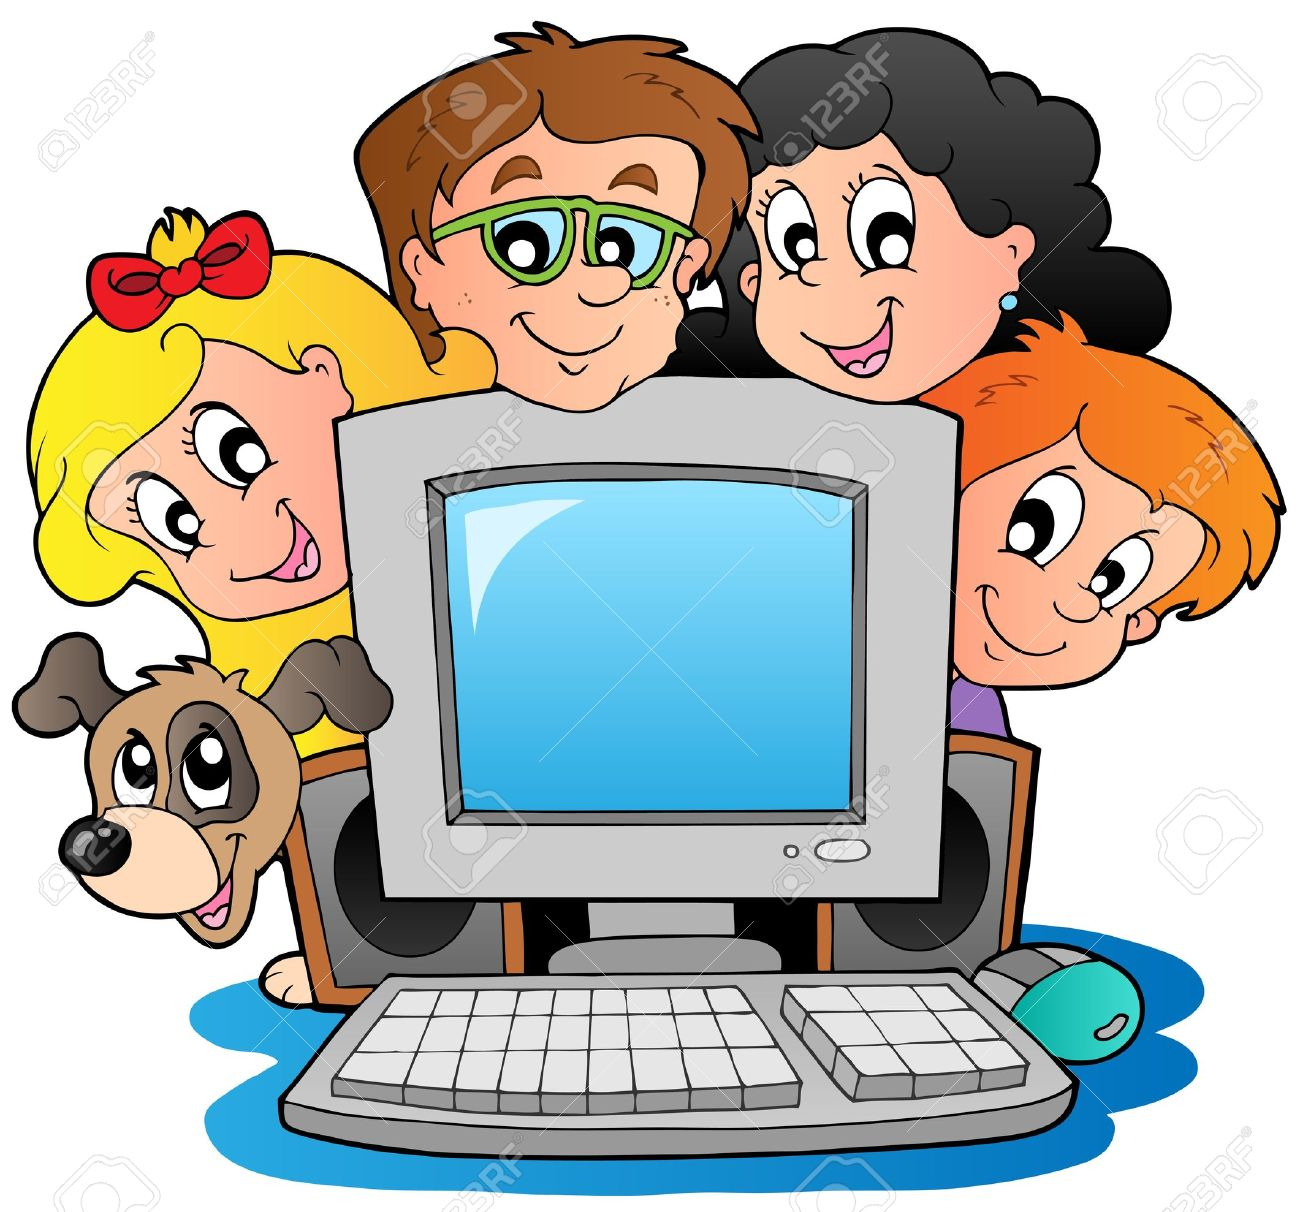 1300x1212 Computer With Cartoon Kids And Dog Royalty Free Cliparts, Vectors